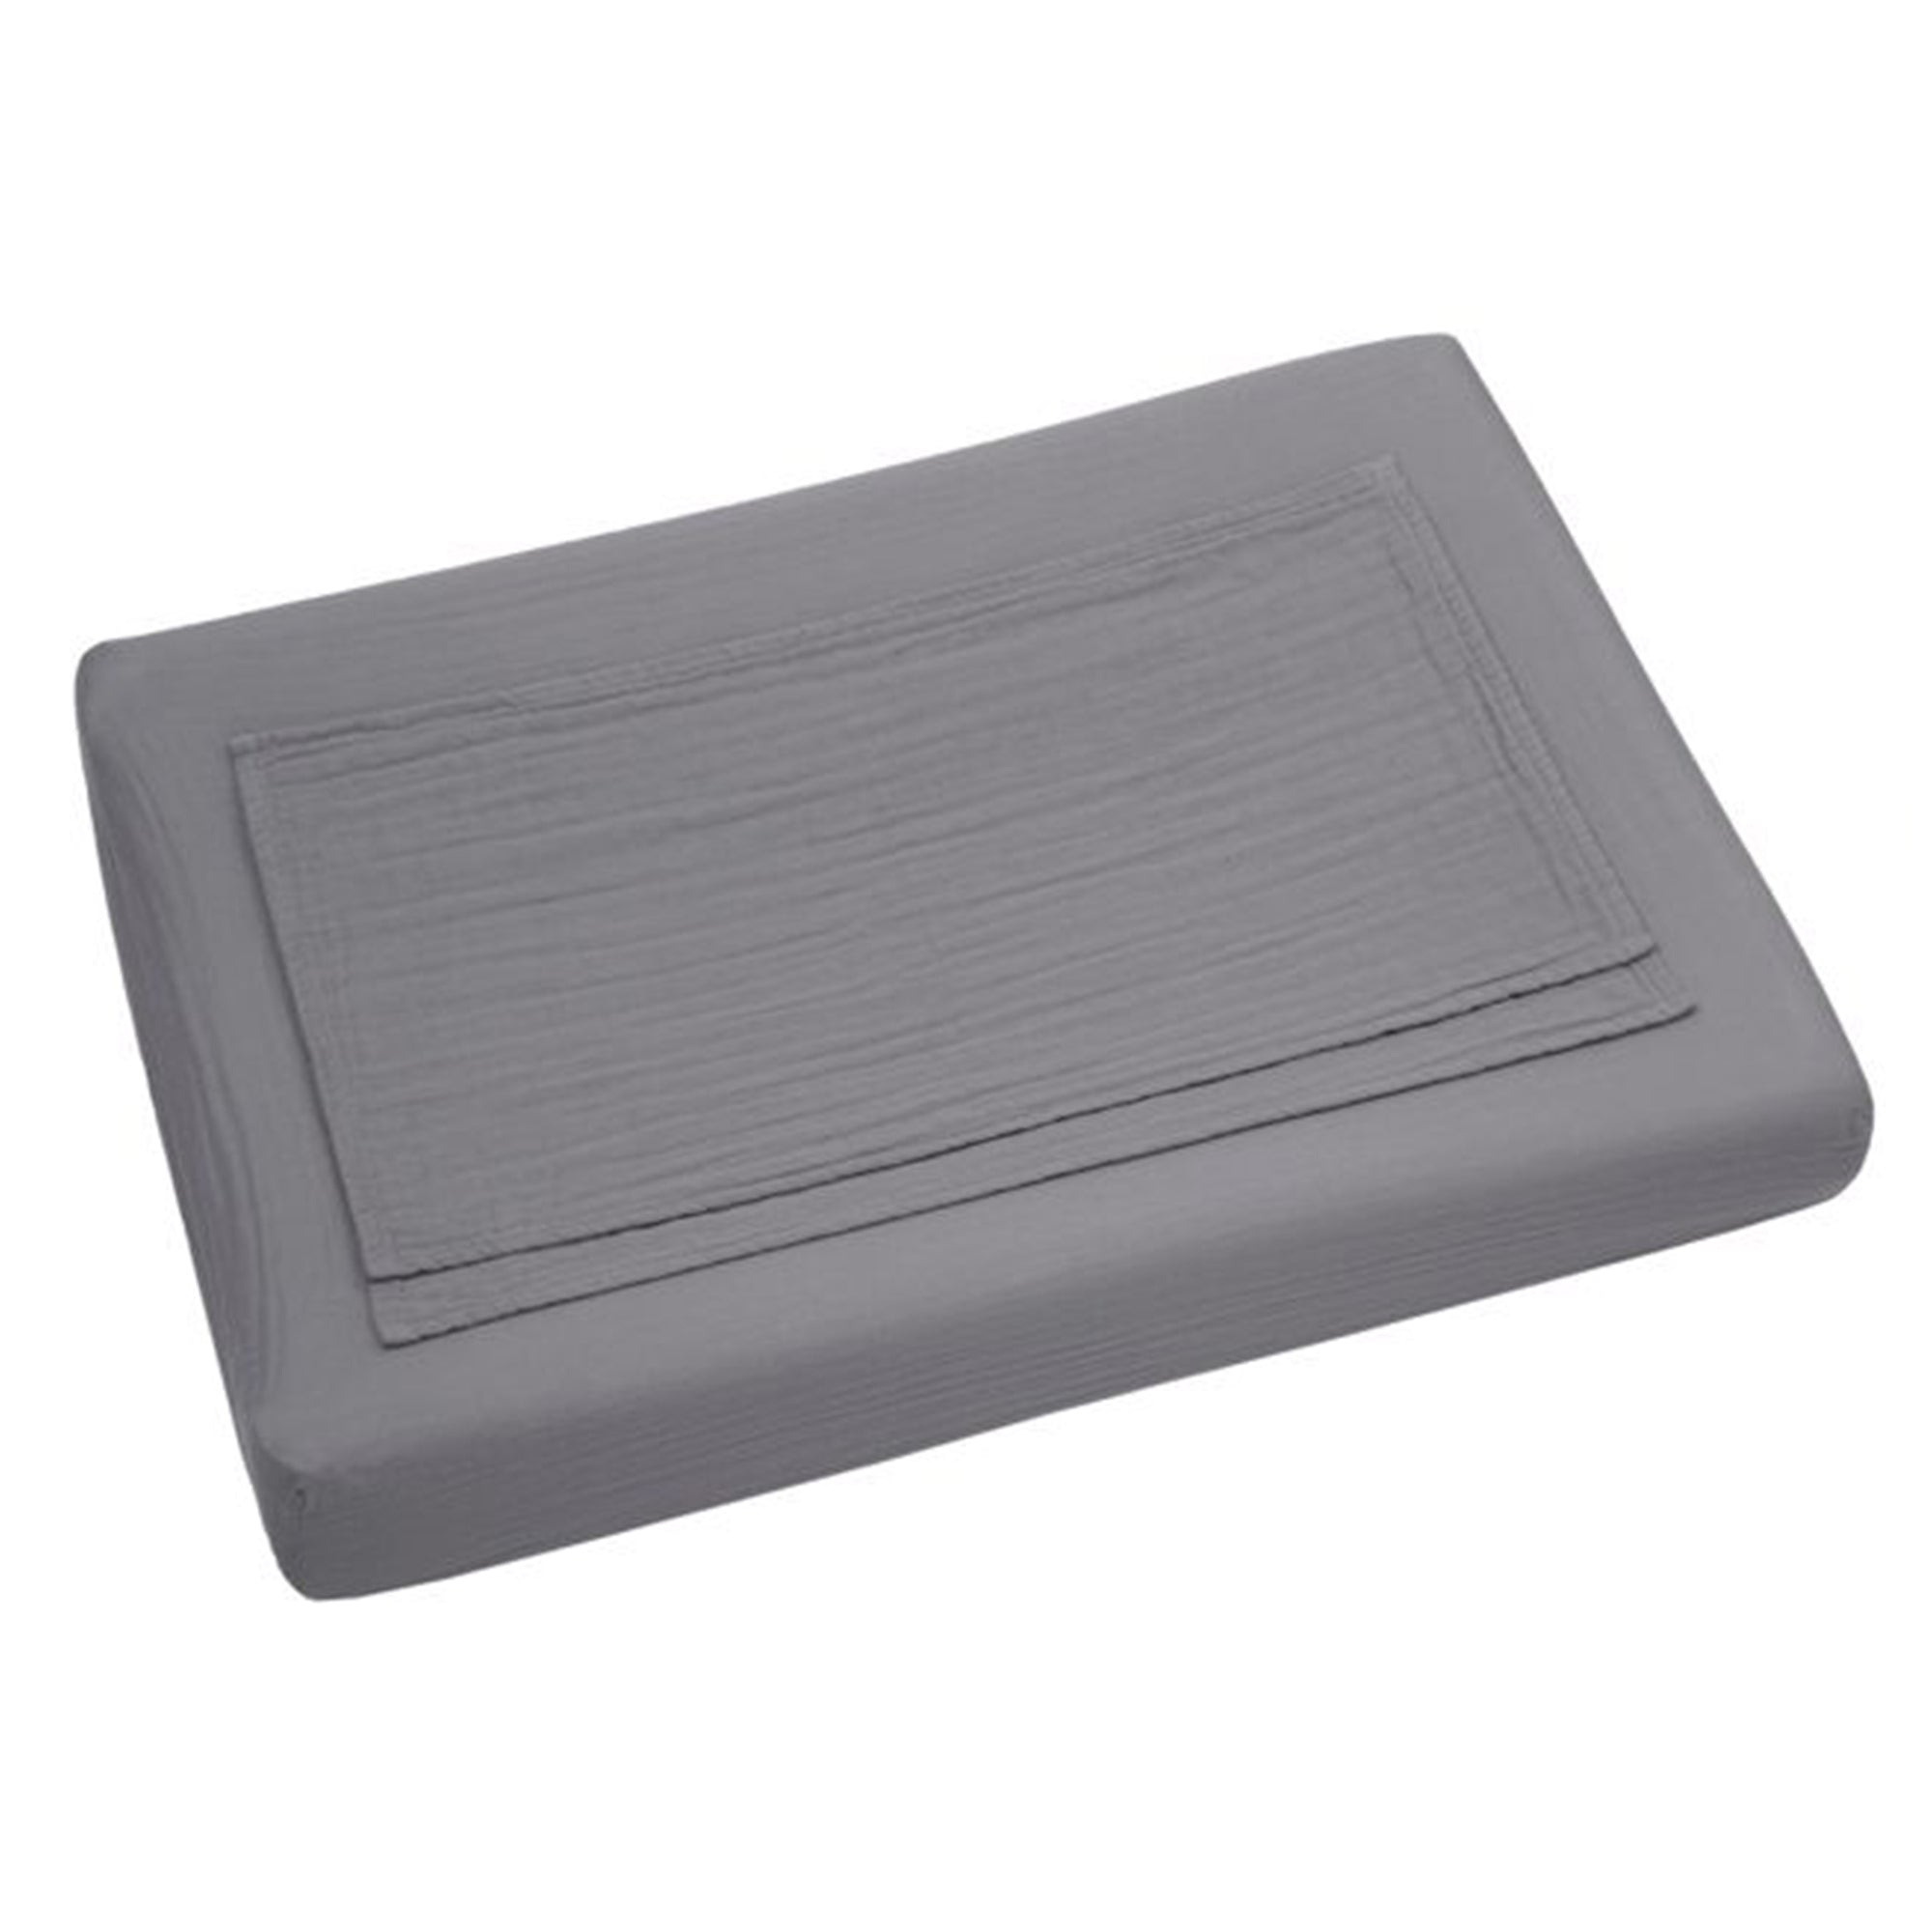 Numero 74 Changing Pad Fitted Cover in Stone Grey - Scandi Minimal